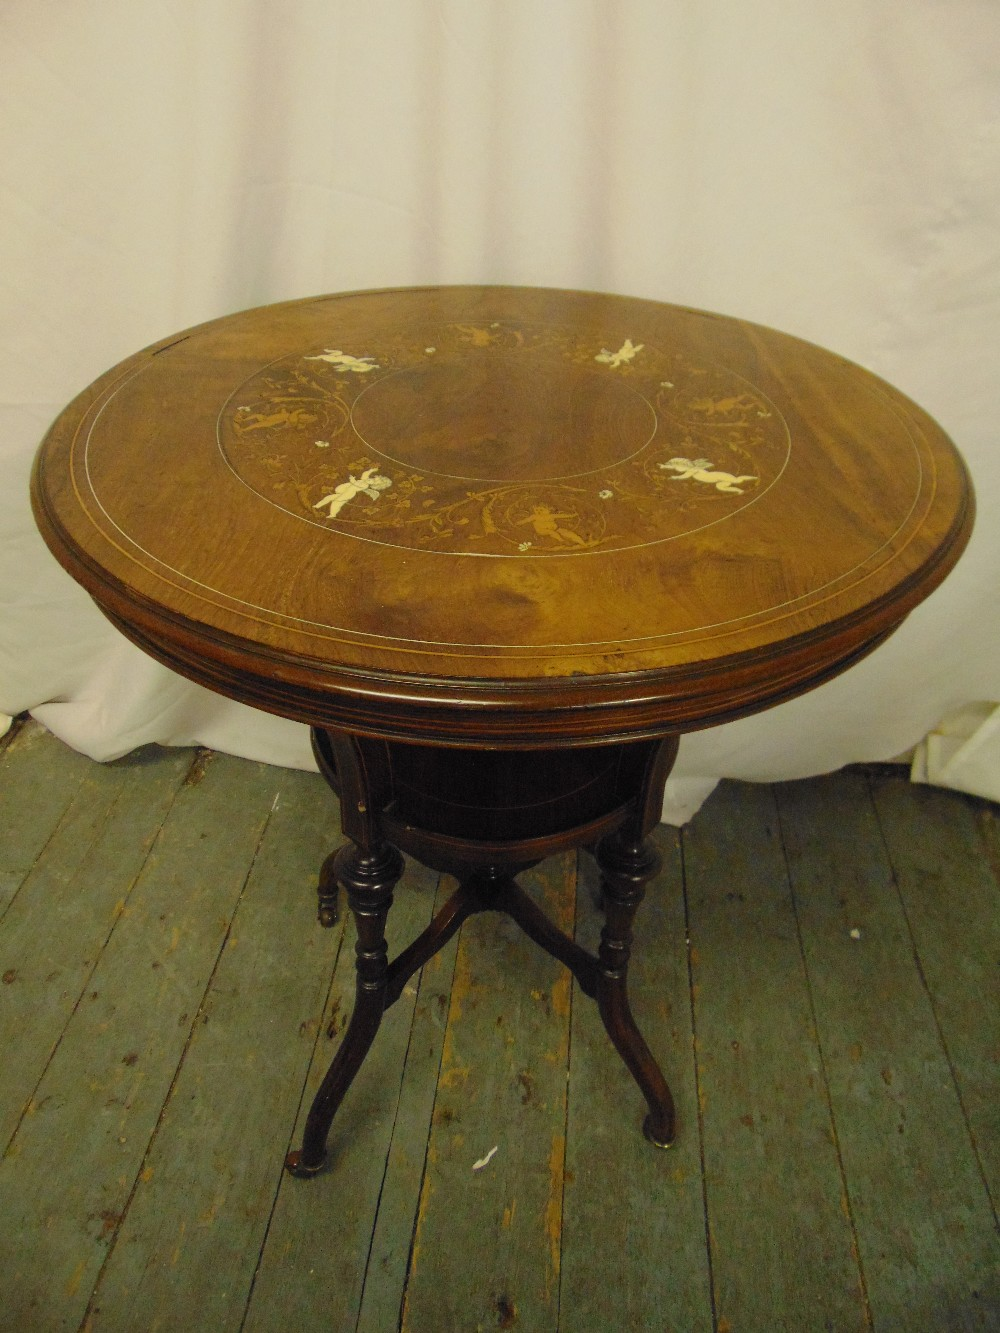 Lot 10 - An Edwardian circular occasional table inlaid with satinwood and bone, on cabriole legs